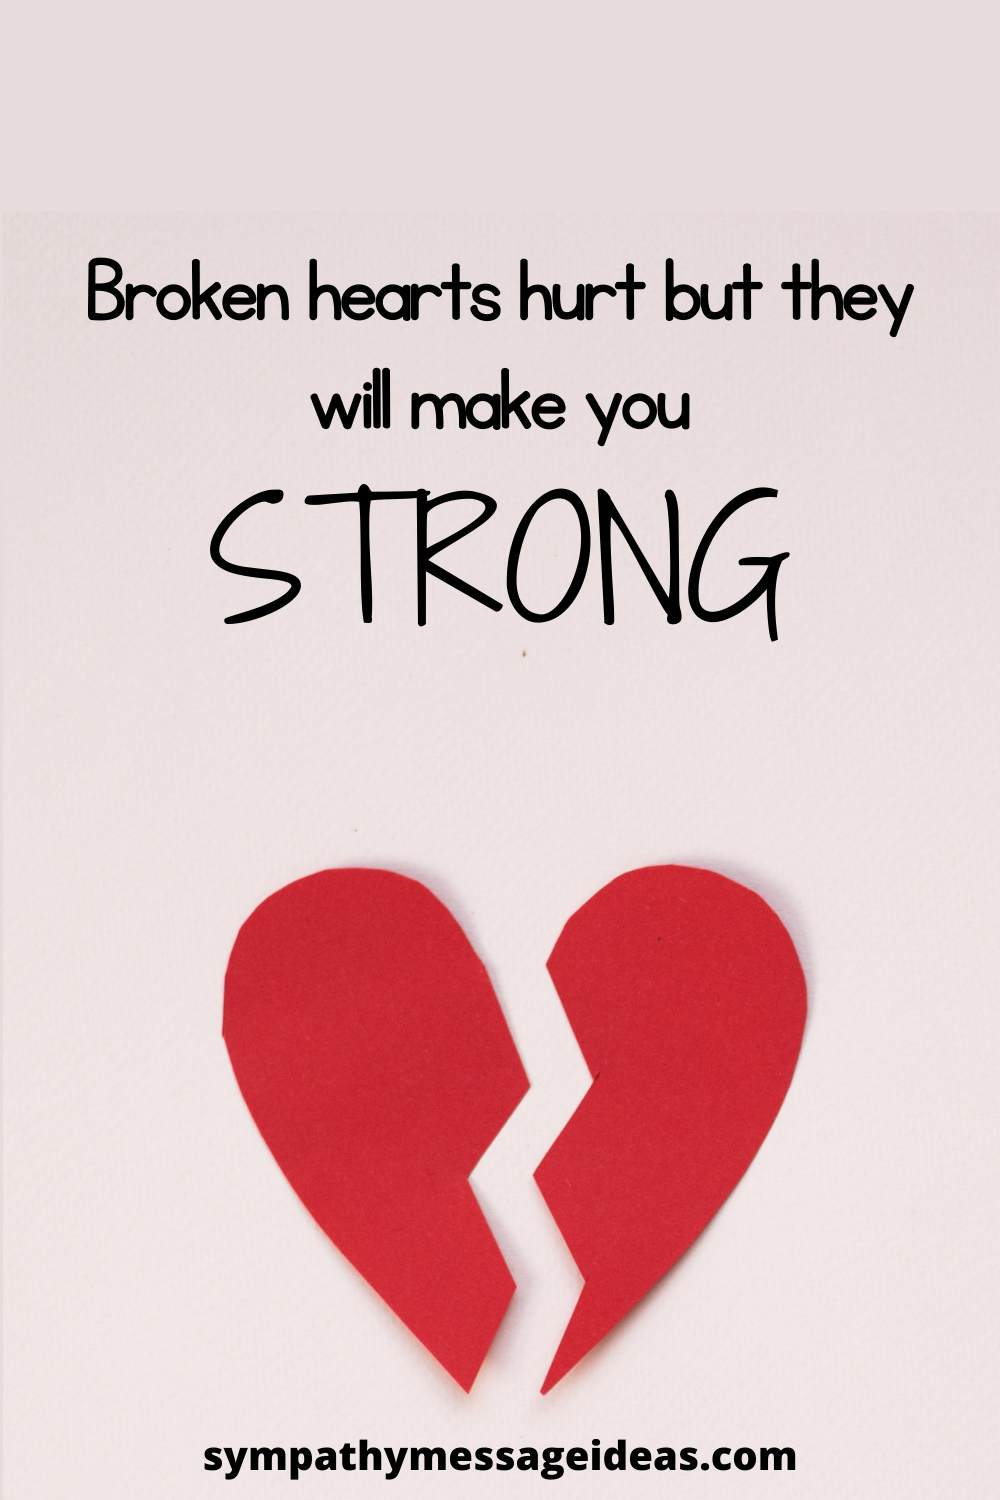 broken hearts make you strong quote